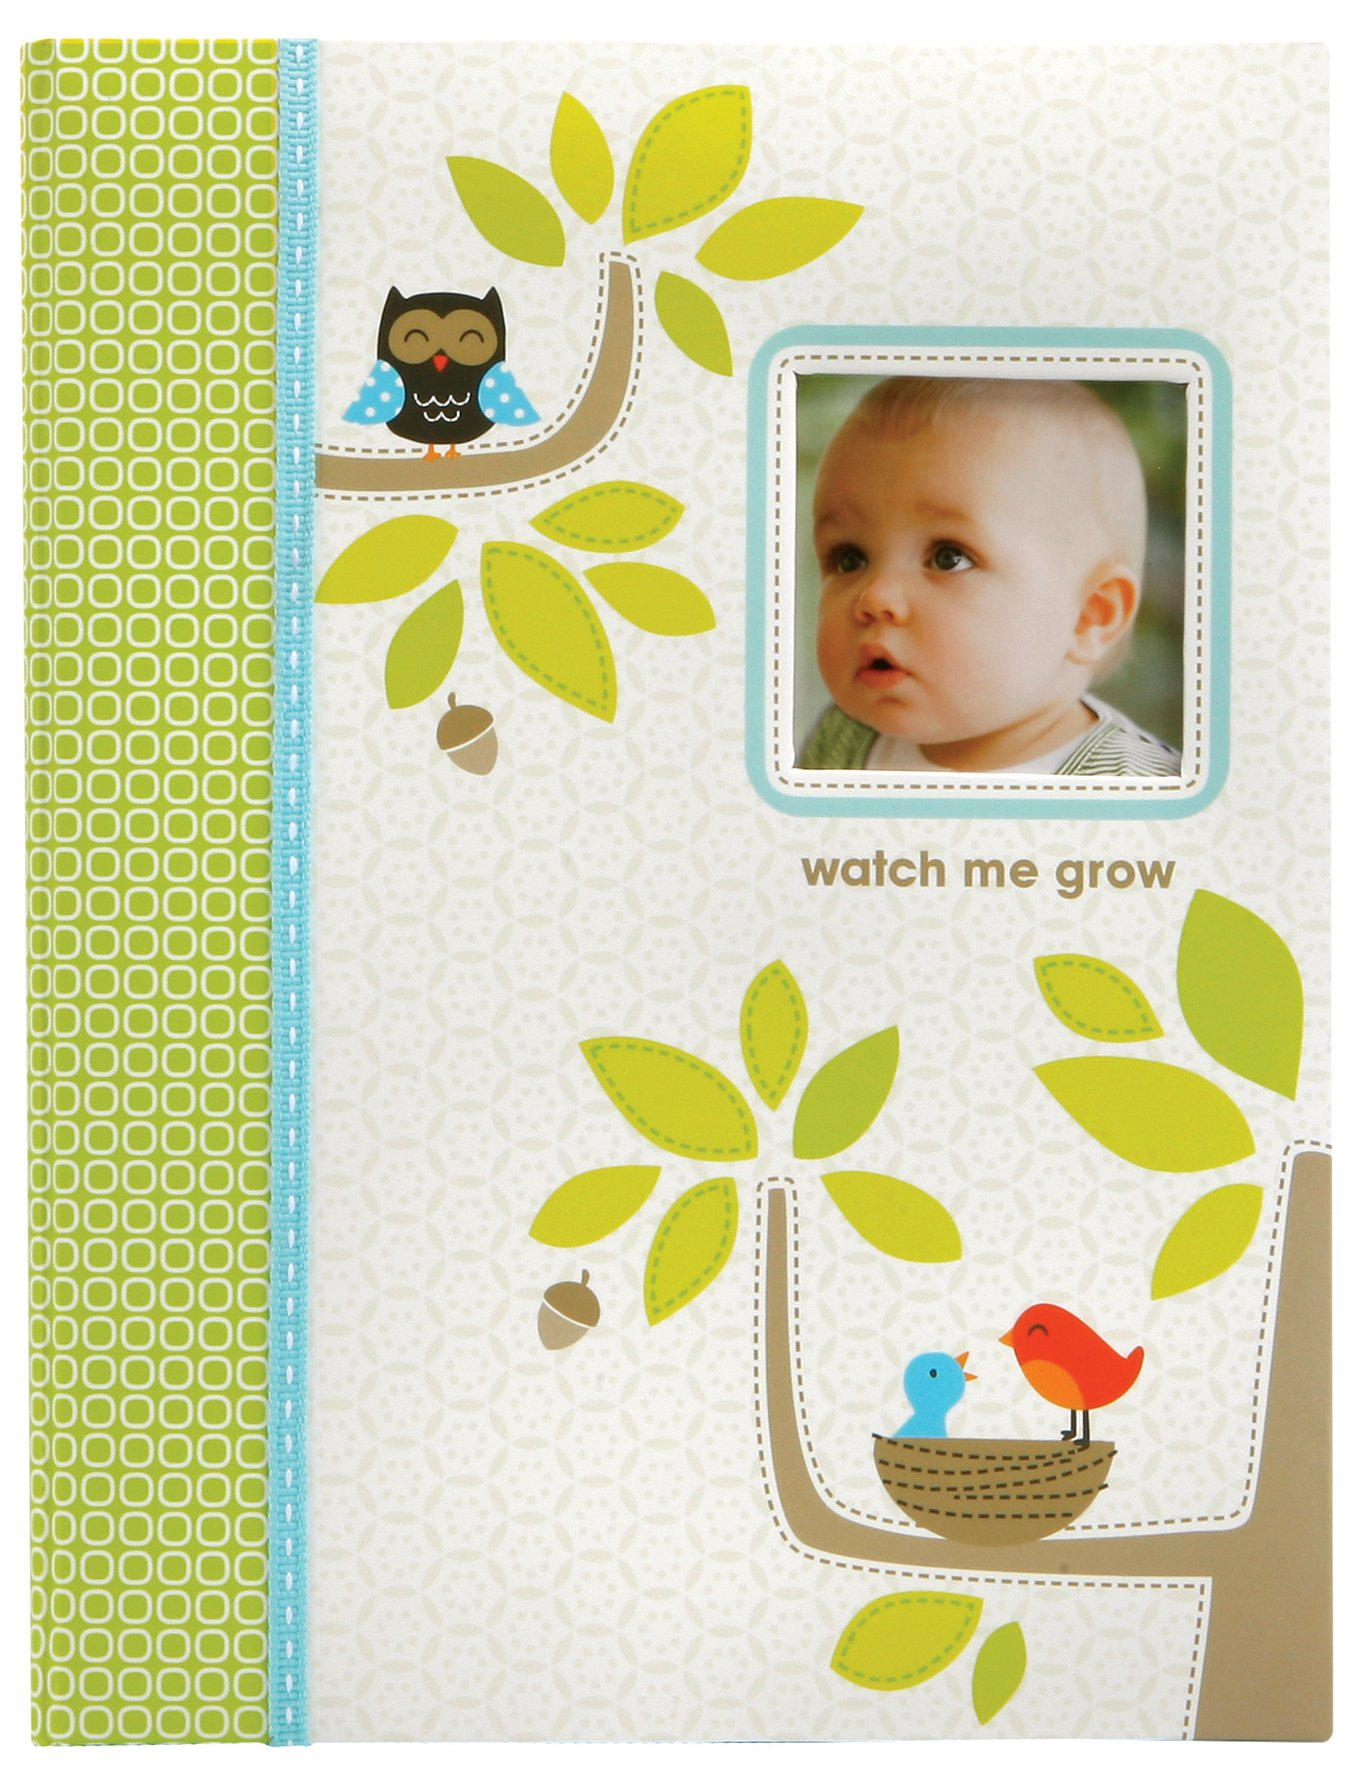 Carter's Green Woodland Animals My First Years Bound Memory Book for Babies, 9'' W x 11.125'' H, 60 Pages